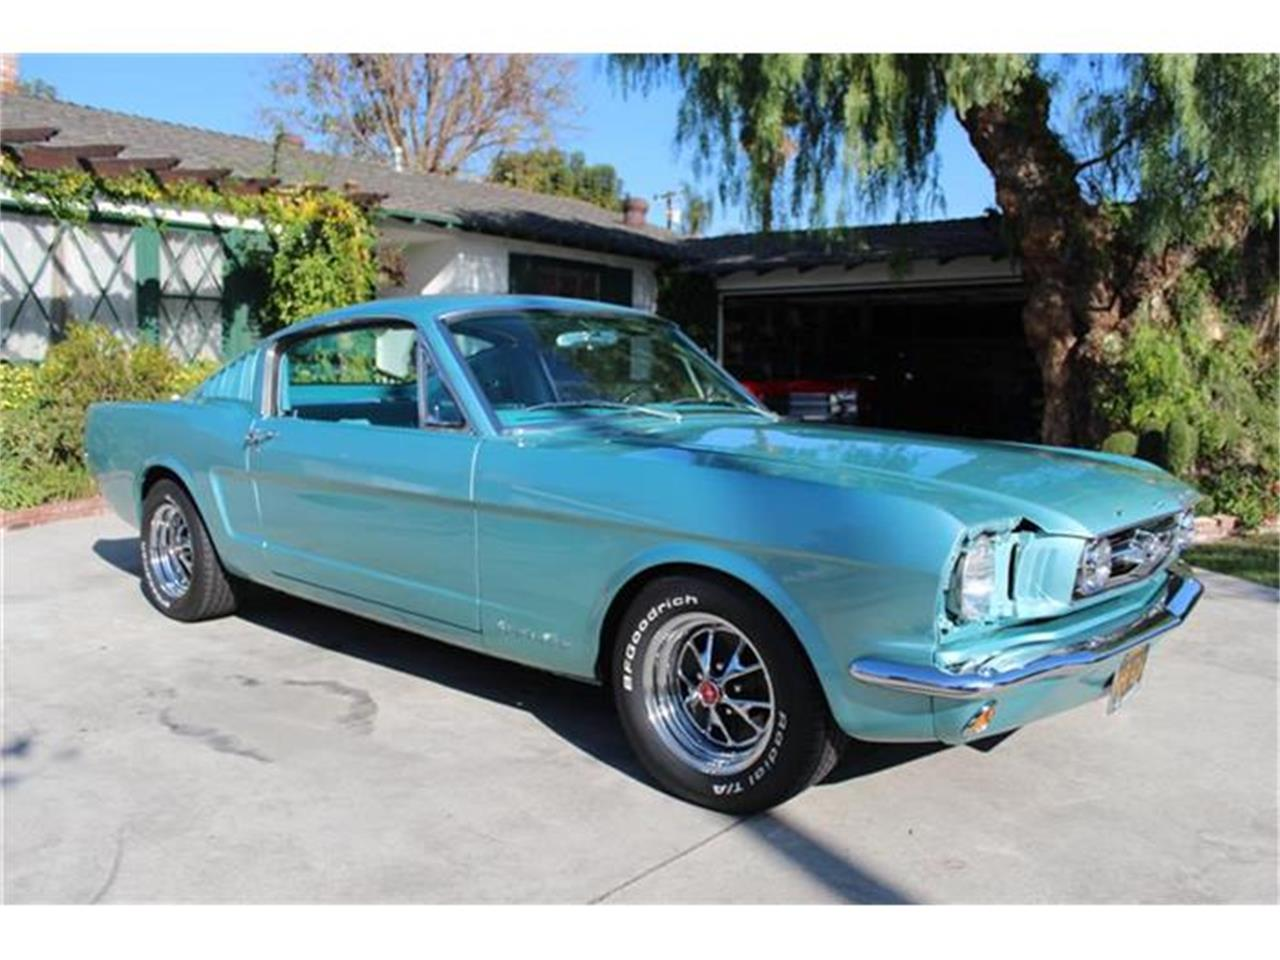 Large Picture of Classic '66 Mustang located in California - $40,000.00 Offered by a Private Seller - BFEI